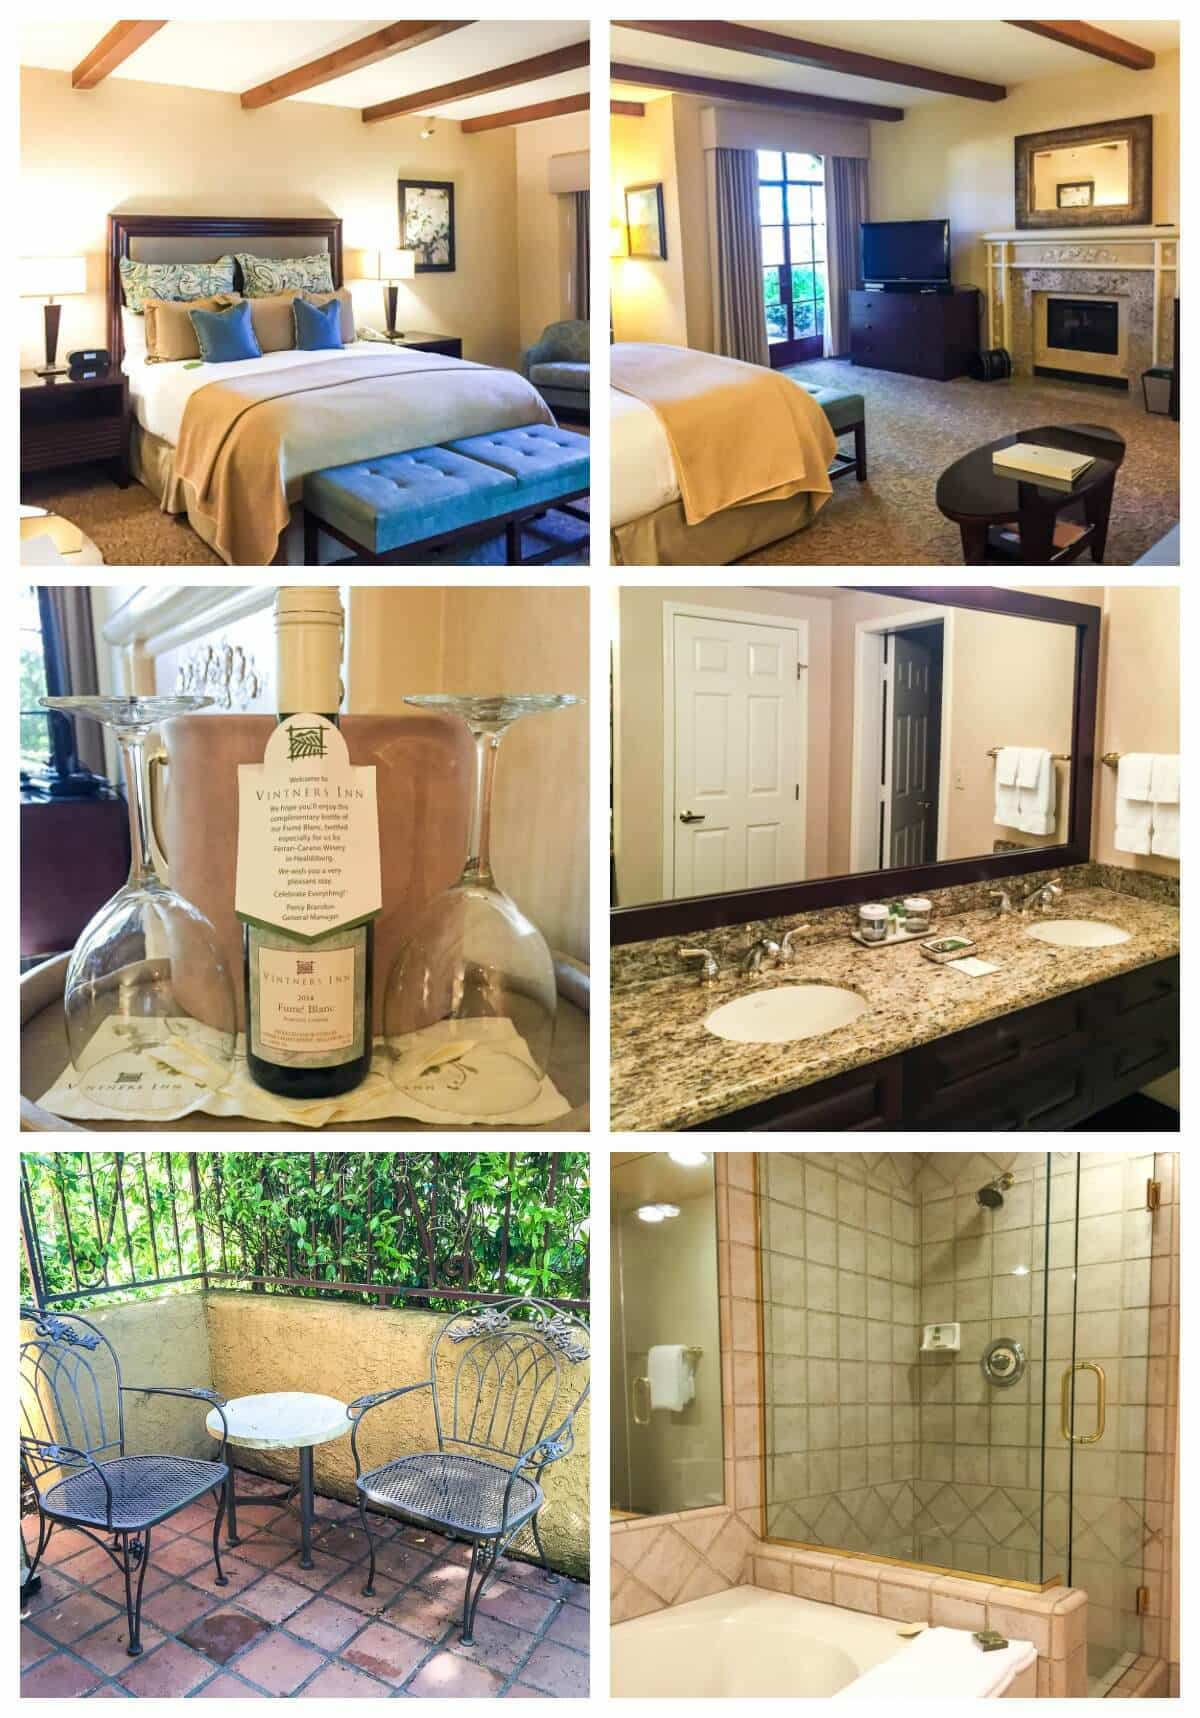 Vintner's Inn Sonoma hotel. Stay here for a perfect trip to Sonoma Valley!